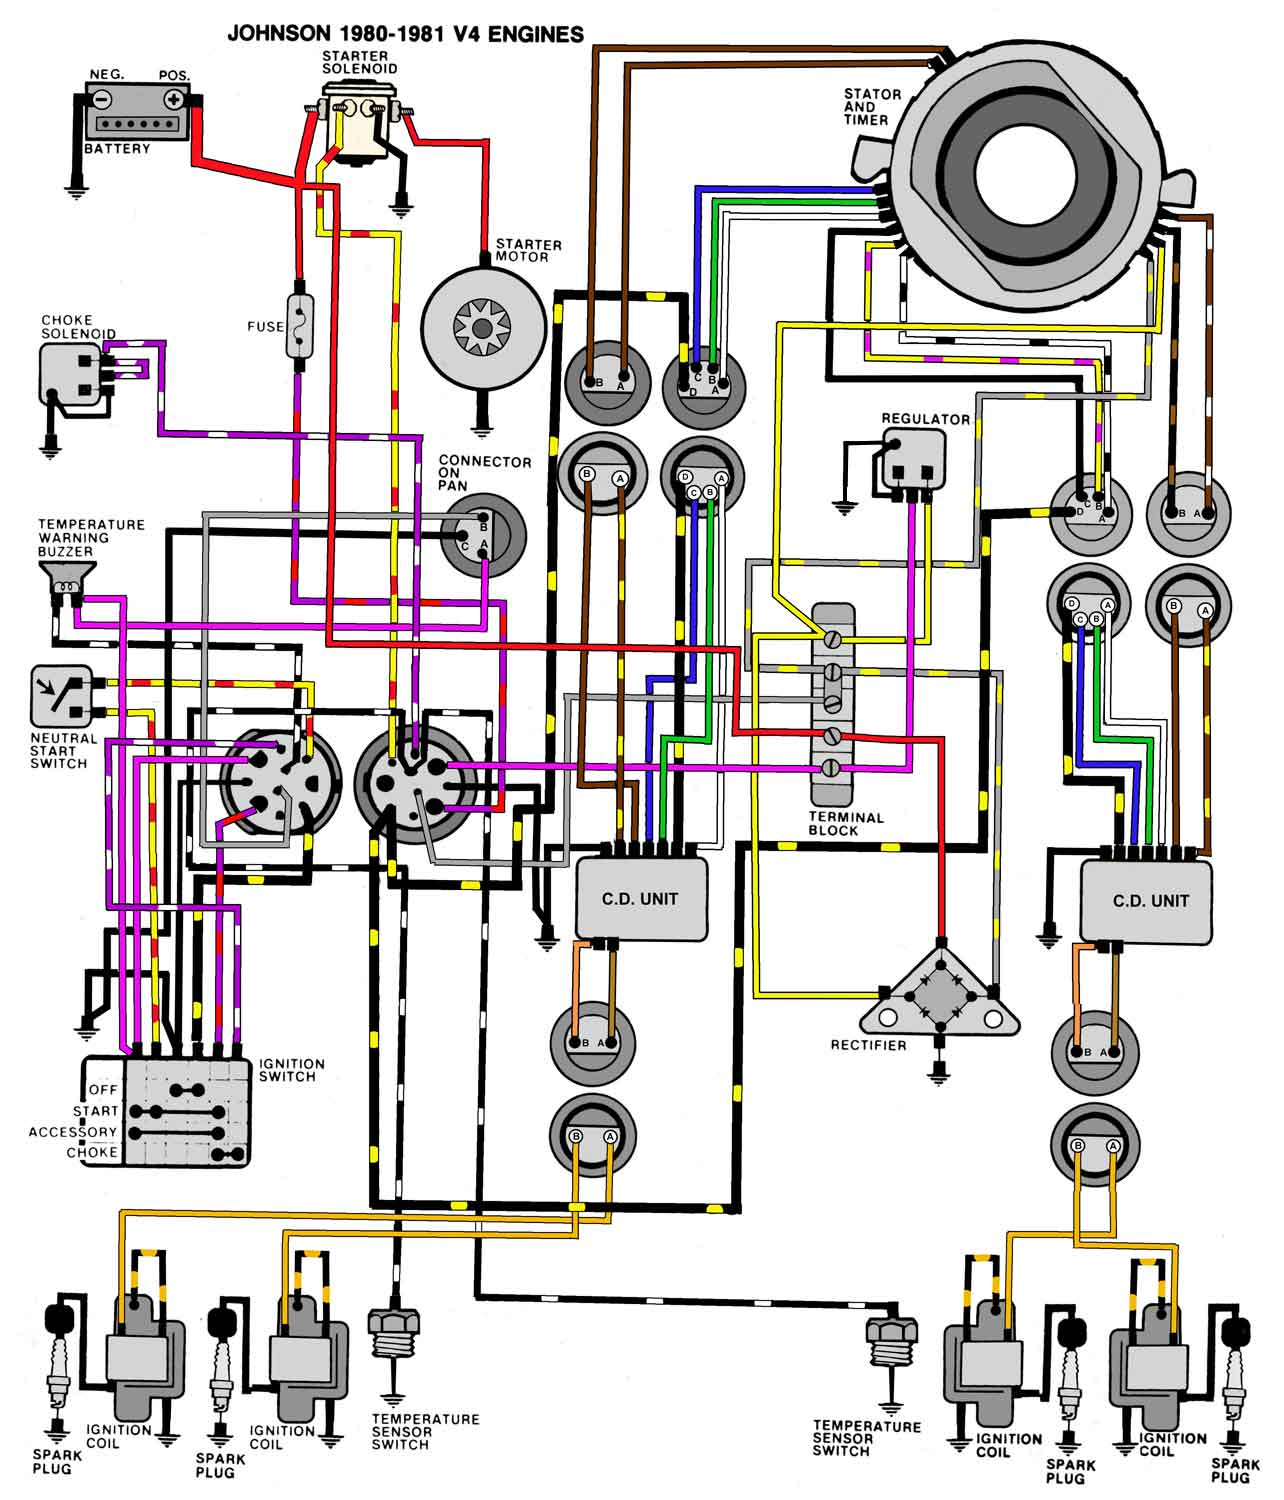 80_81_V4 mastertech marine evinrude johnson outboard wiring diagrams 85 Mercury Outboard Wiring Diagram at gsmportal.co